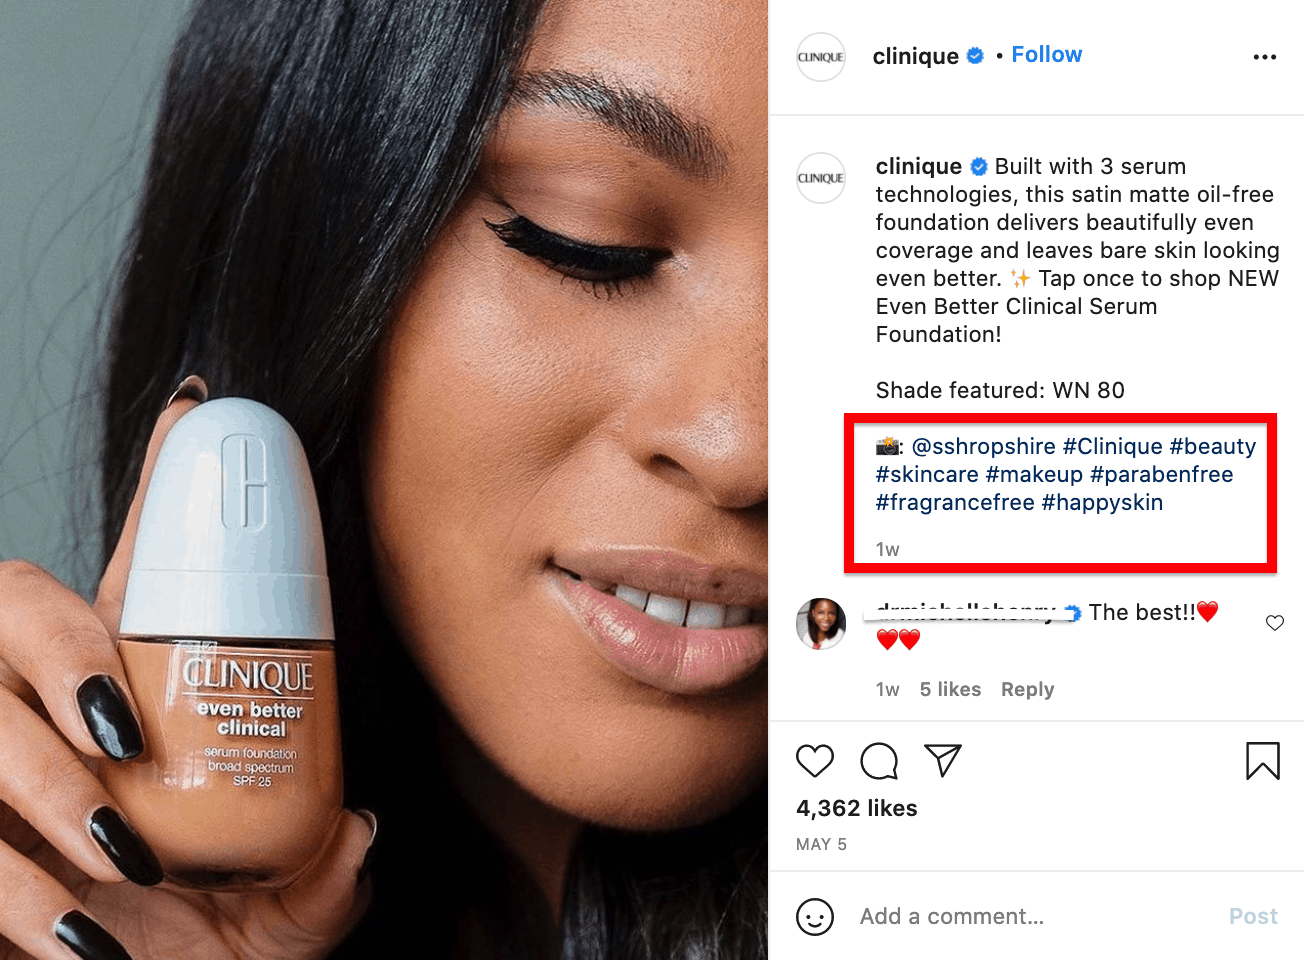 Clinique customer holding foundation product next to her face